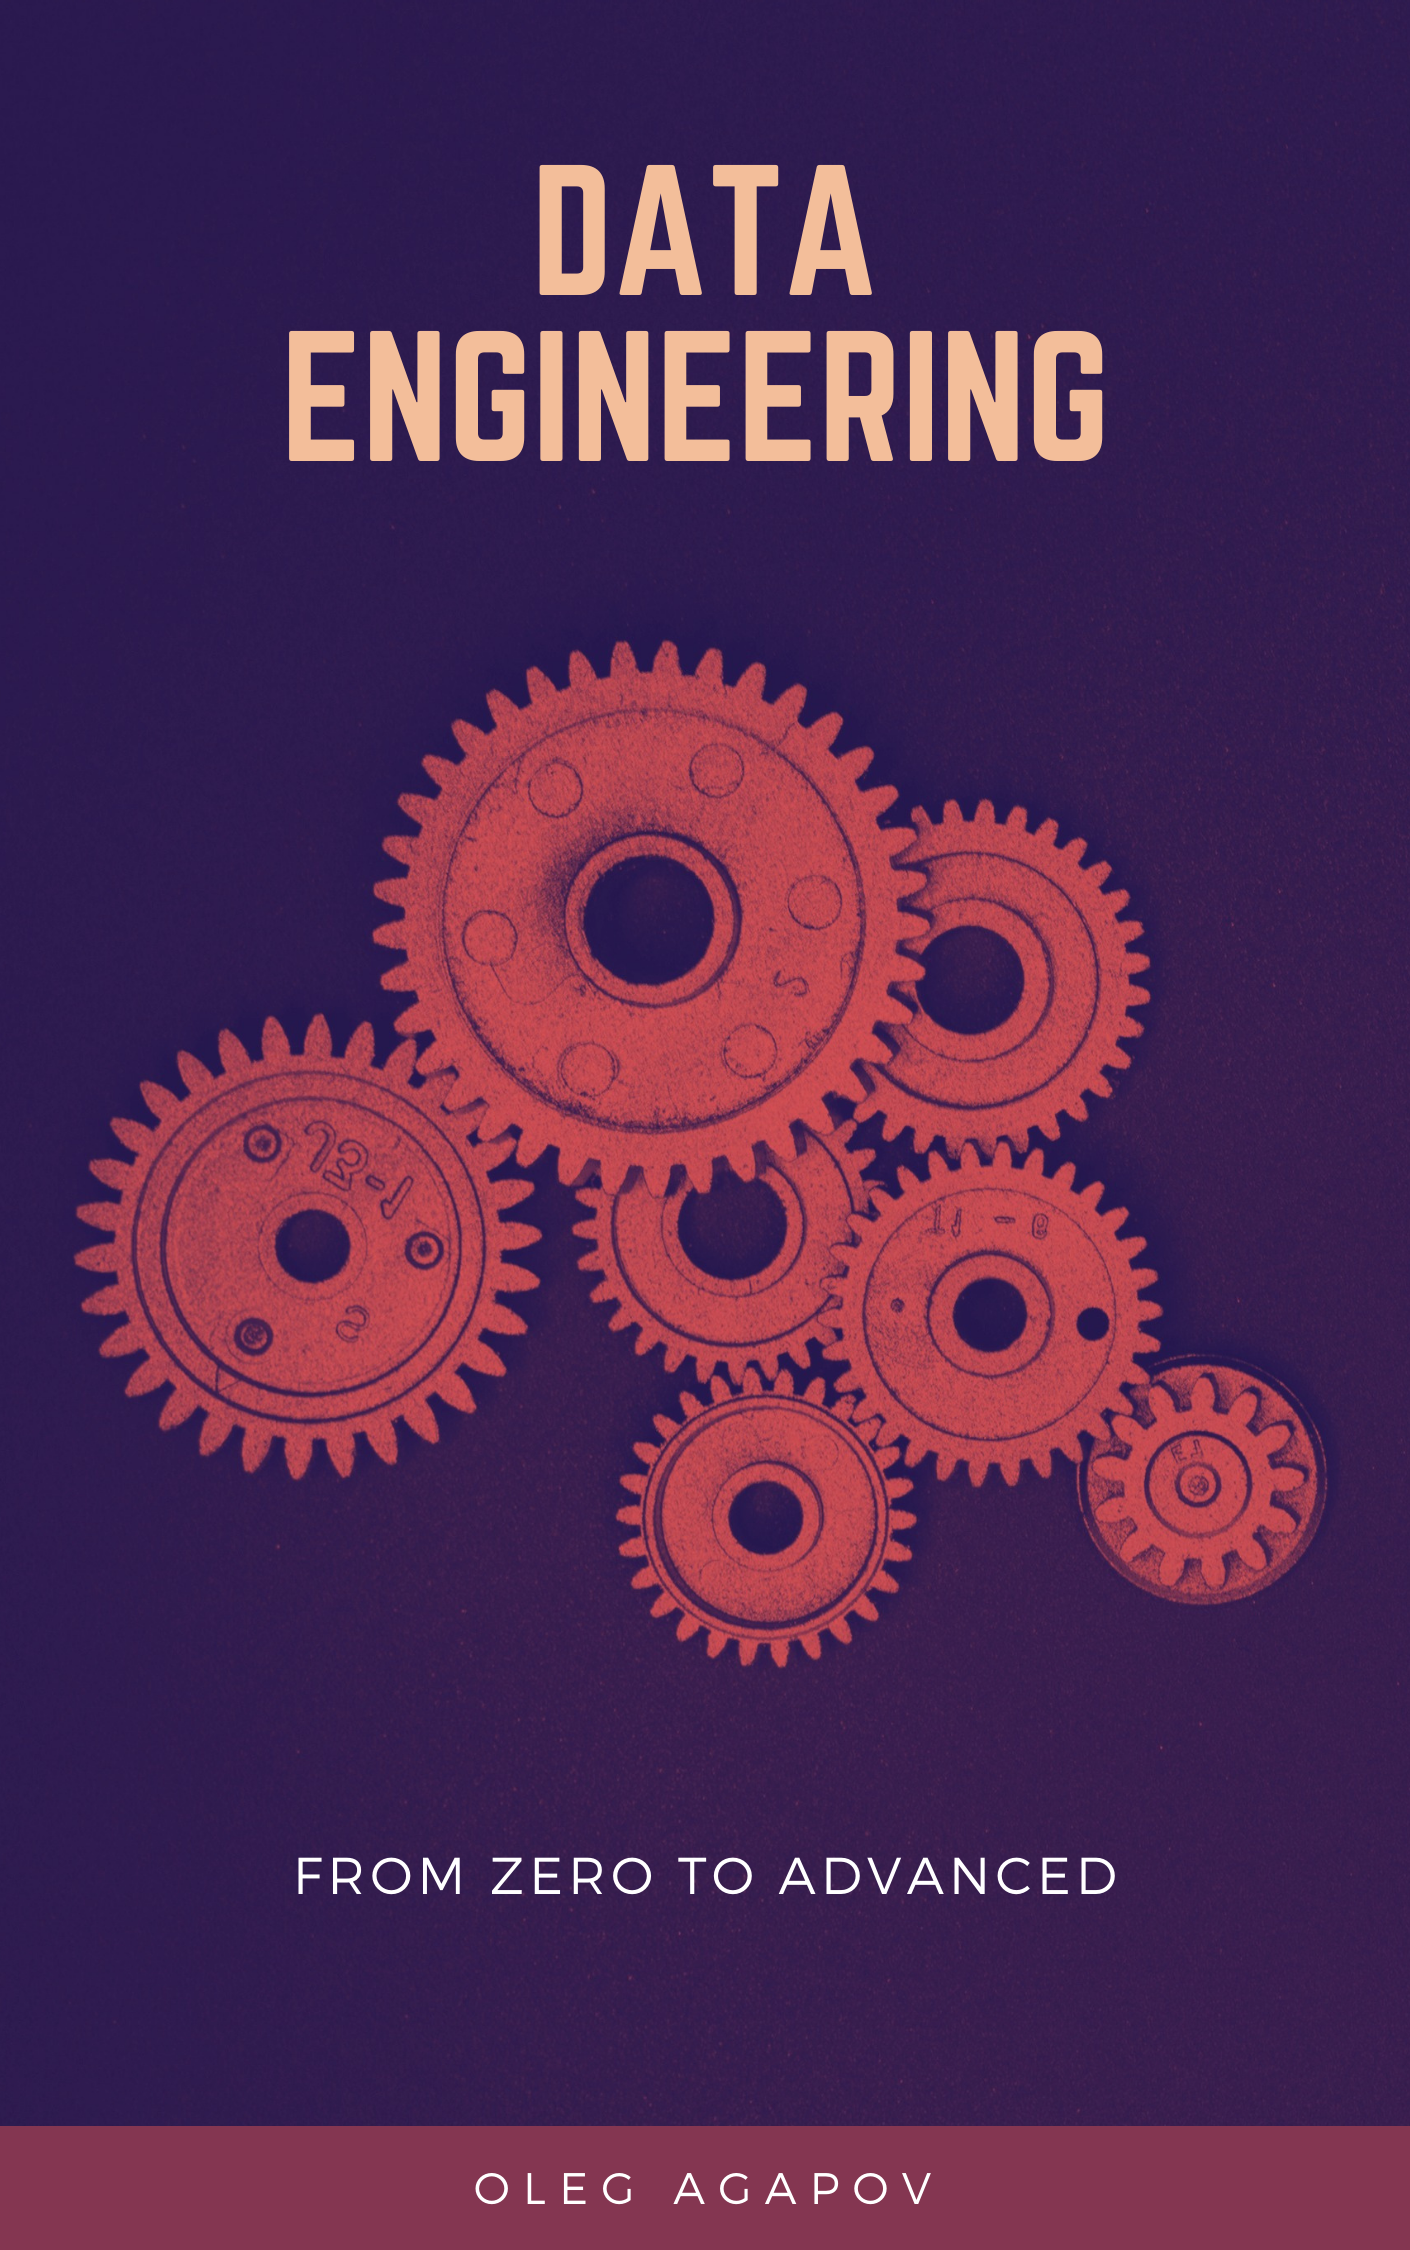 Data engineering book cover